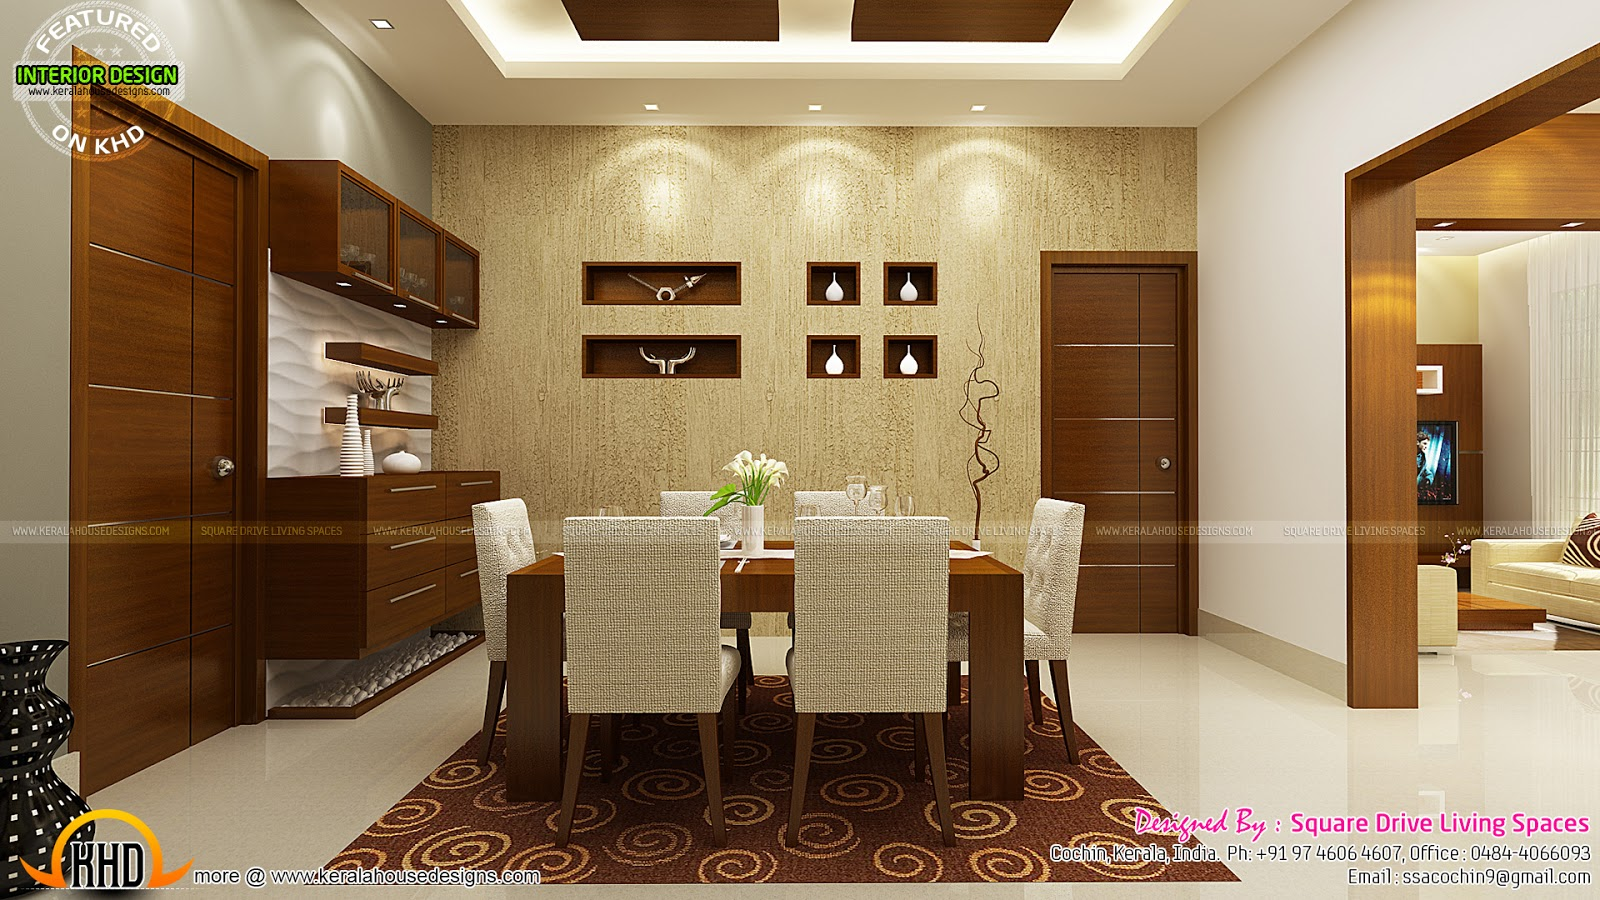 Living Room Designs Kerala Homes september 2015 - kerala home design and floor plans